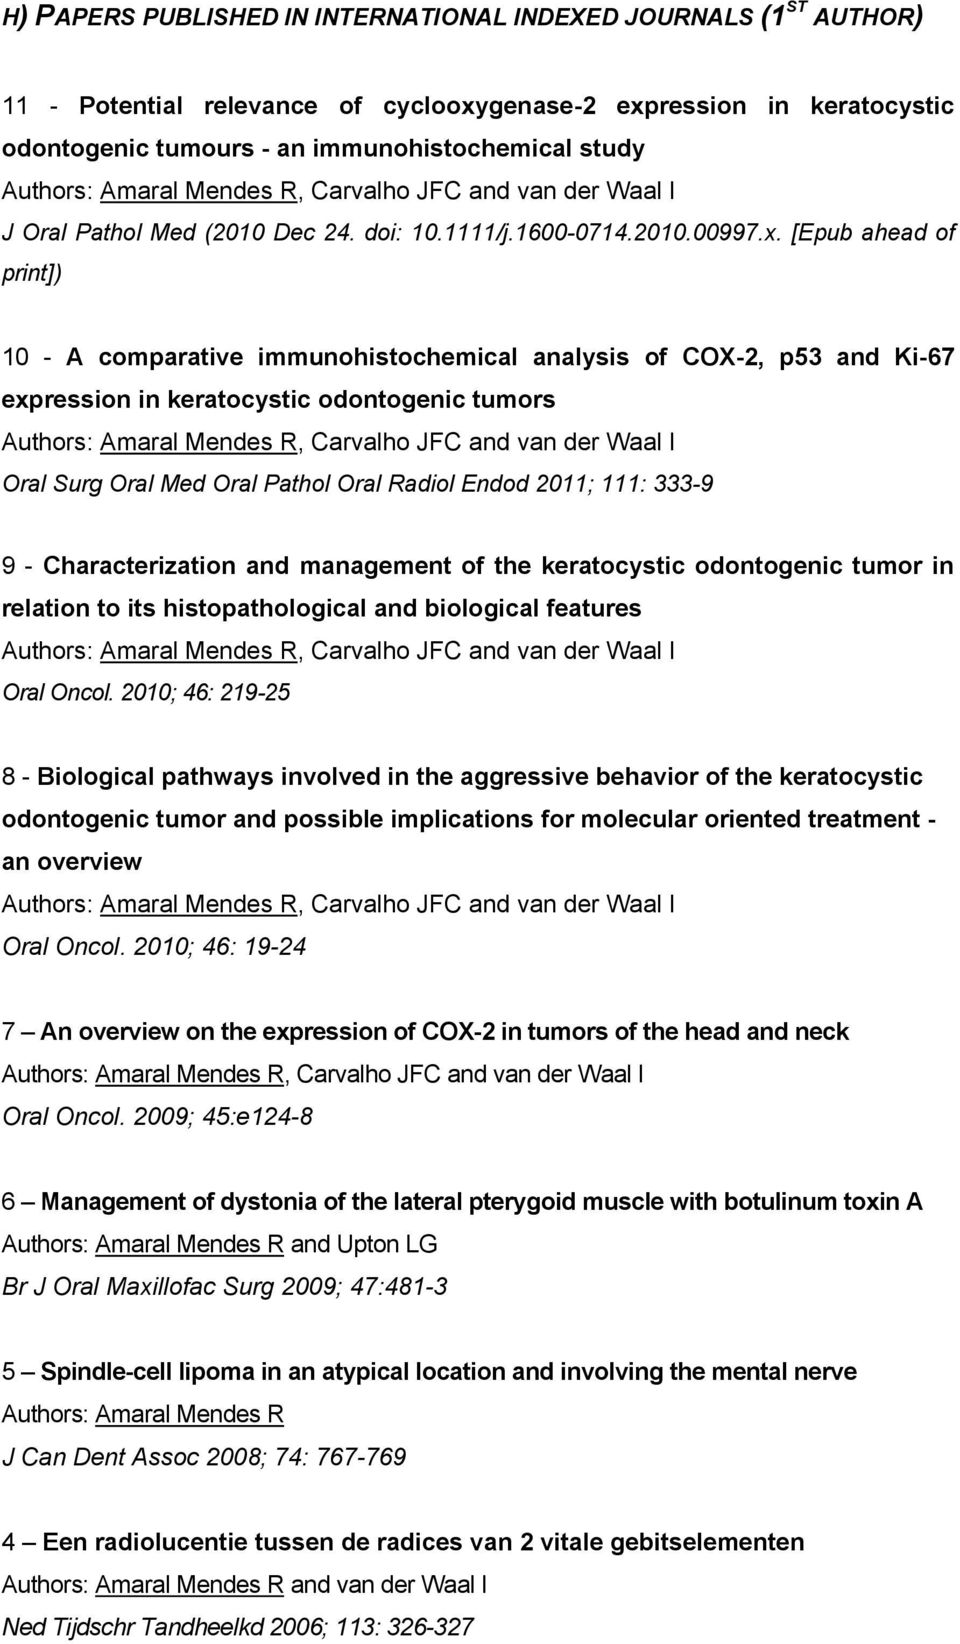 [Epub ahead of print]) 10 - A comparative immunohistochemical analysis of COX-2, p53 and Ki-67 expression in keratocystic odontogenic tumors Authors: Amaral Mendes R, Carvalho JFC and van der Waal I